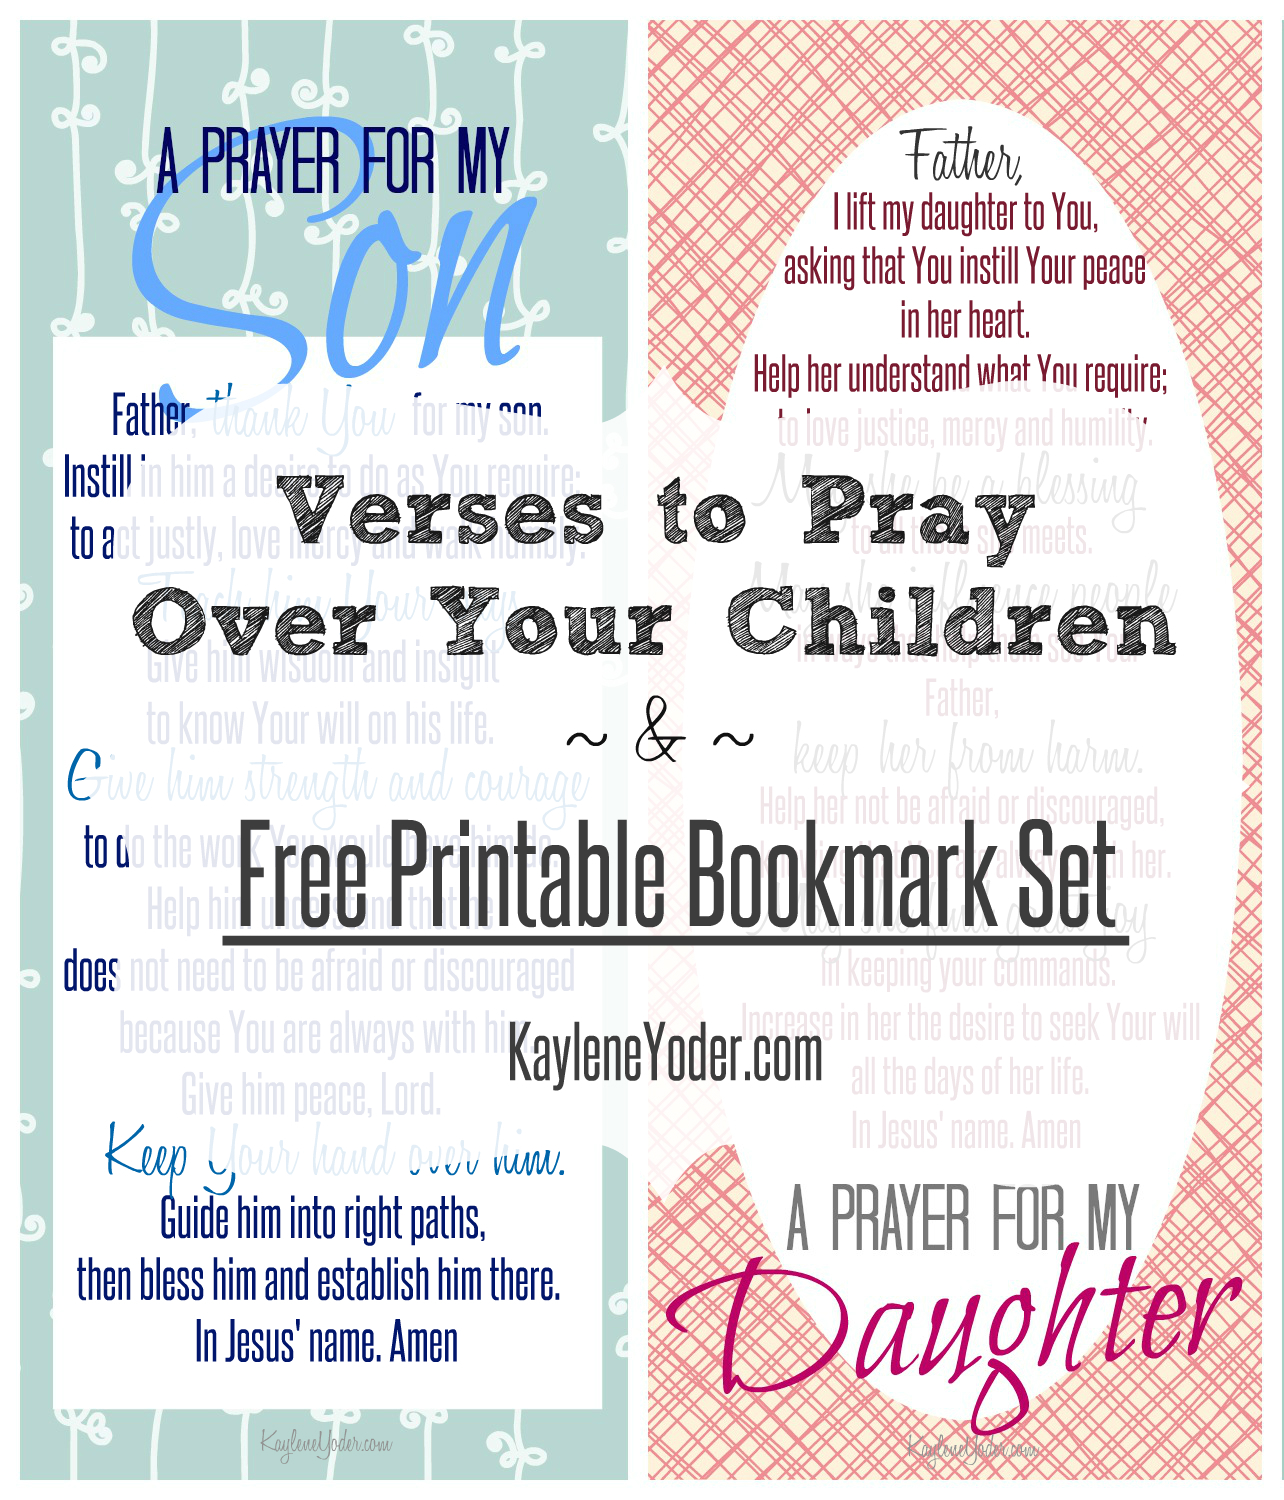 Free printable bookmark set with a prayer for sons, daughters and parents (2)